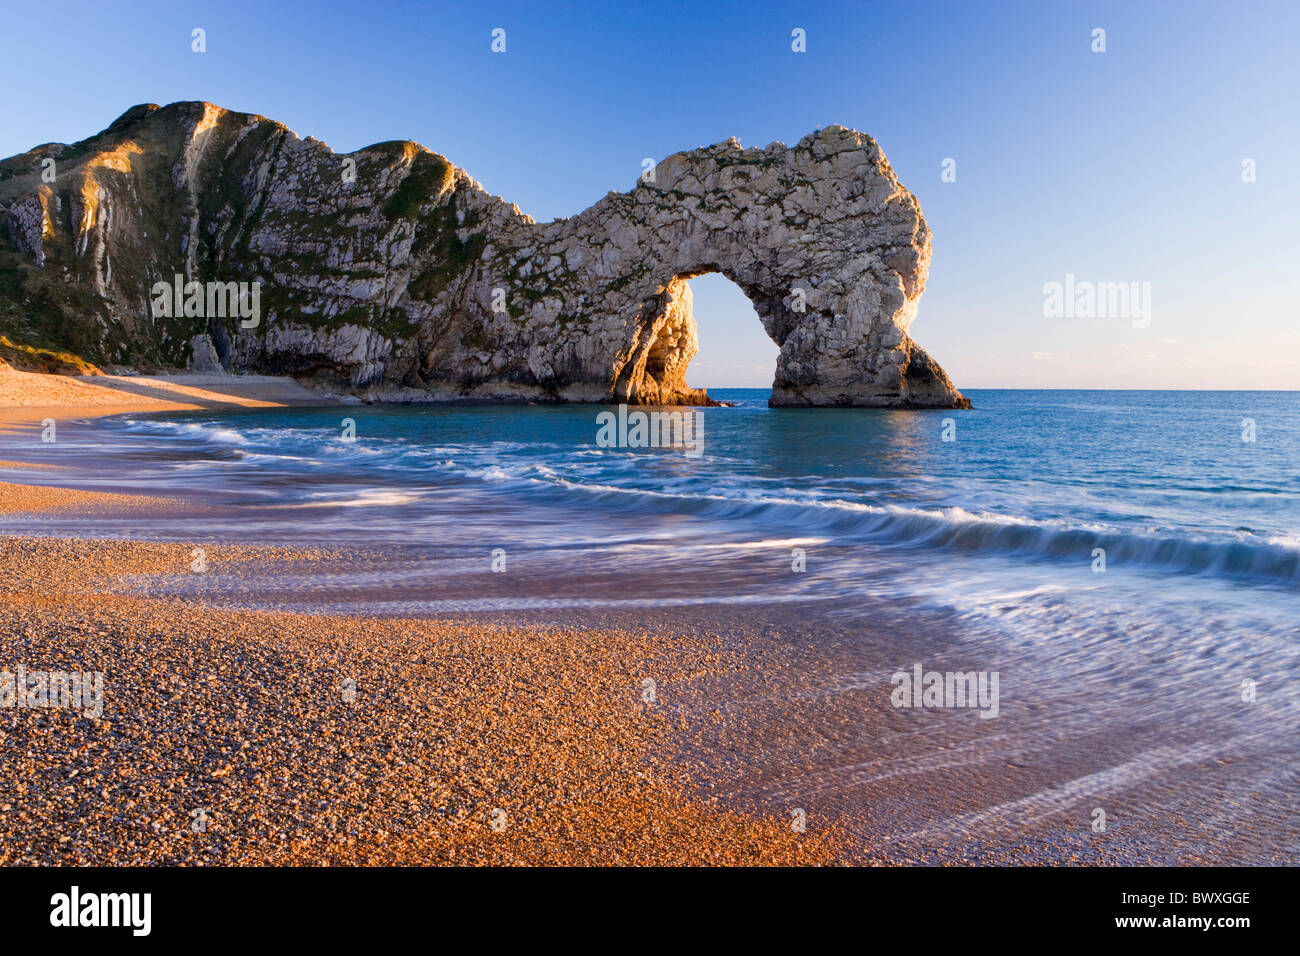 Durdle Door, Dorset, UK - Stock Image